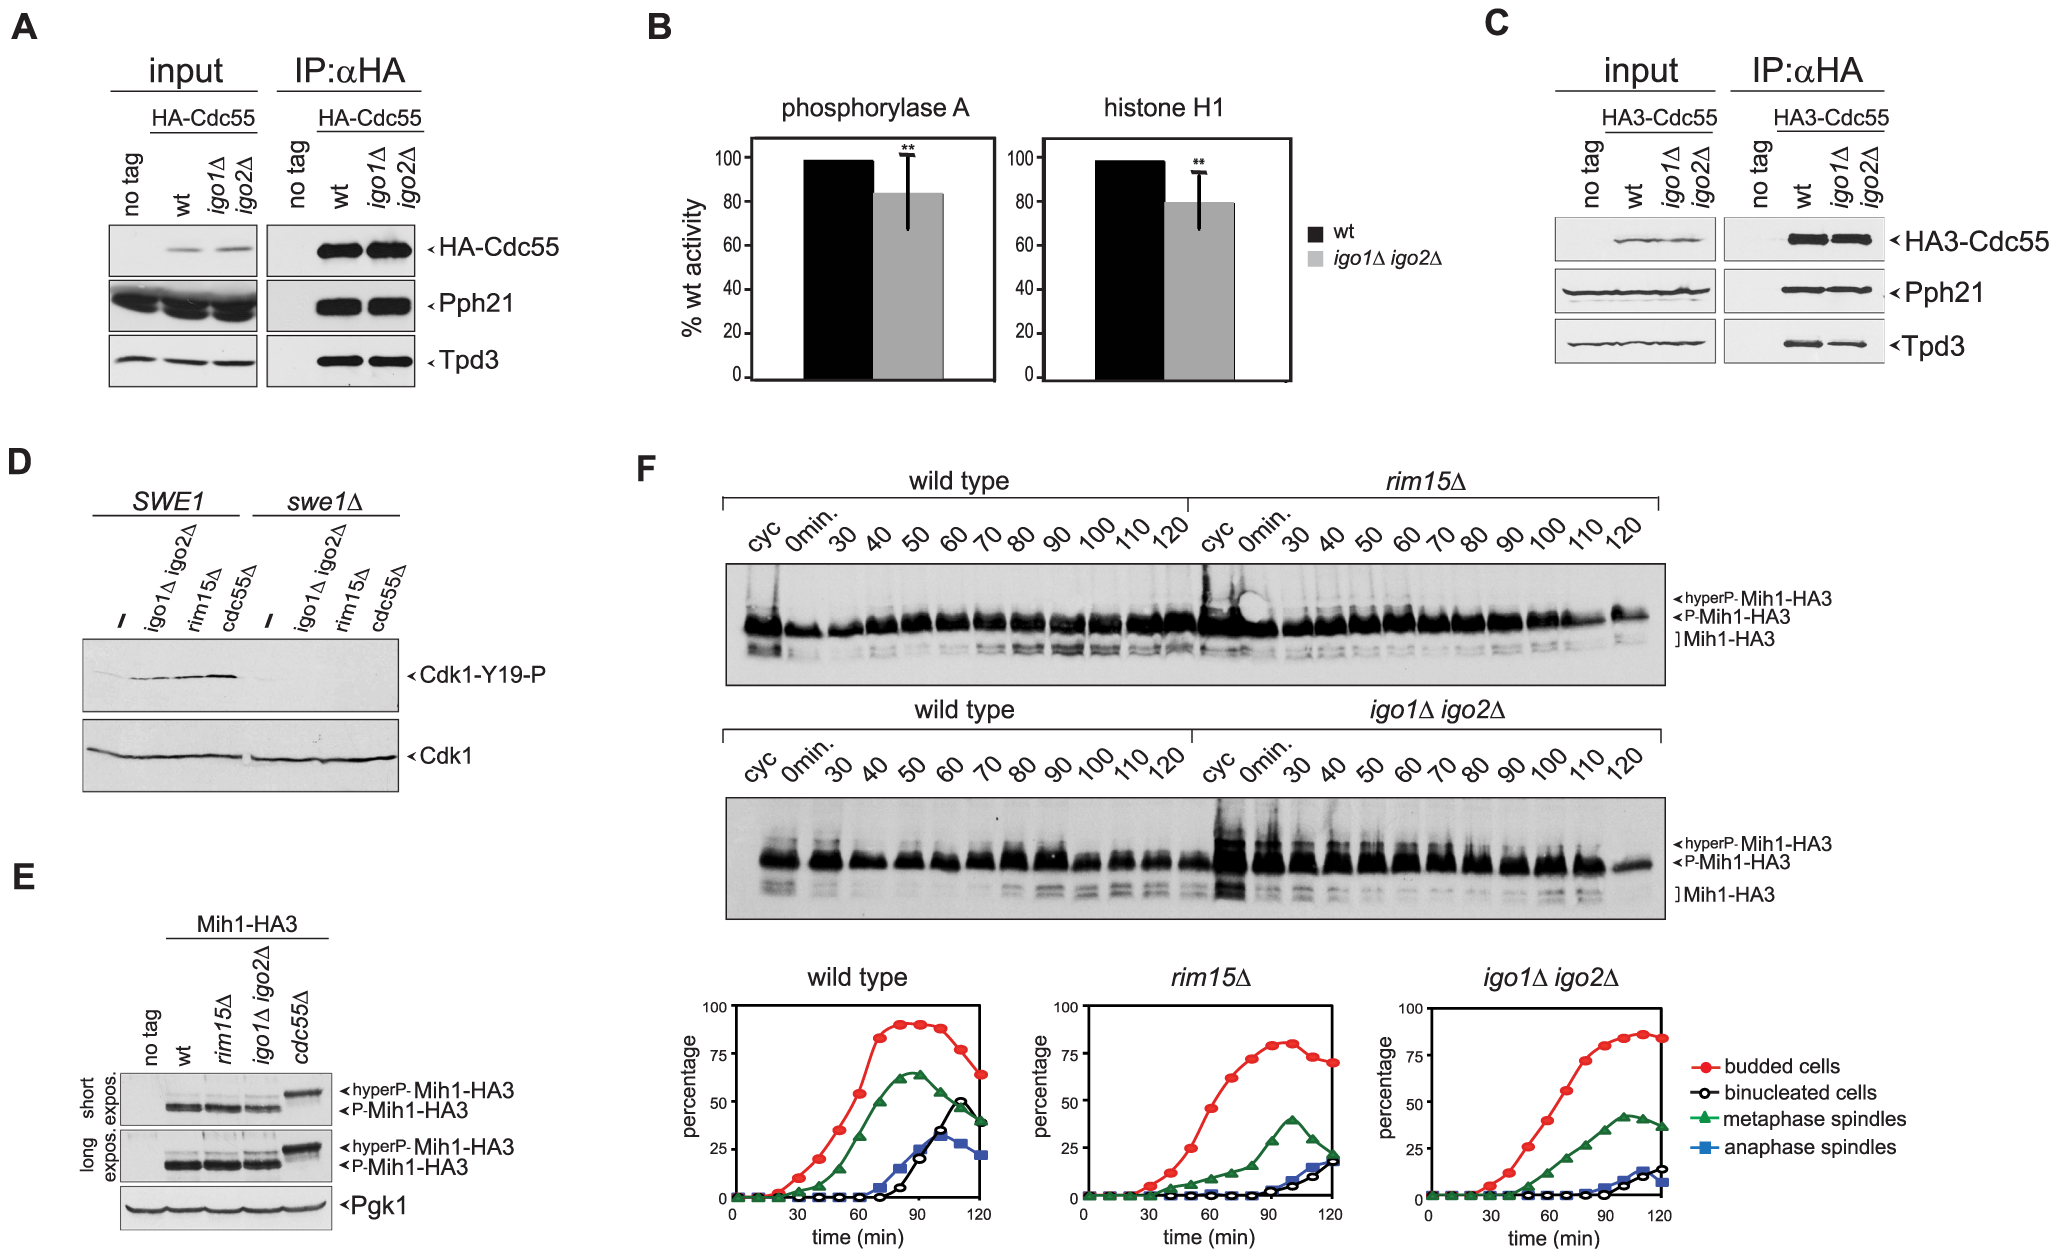 Igo proteins are required for full PP2A<sup>Cdc55</sup> activity and timely Cdk1-Tyr19 and Mih1 dephosphorylation.